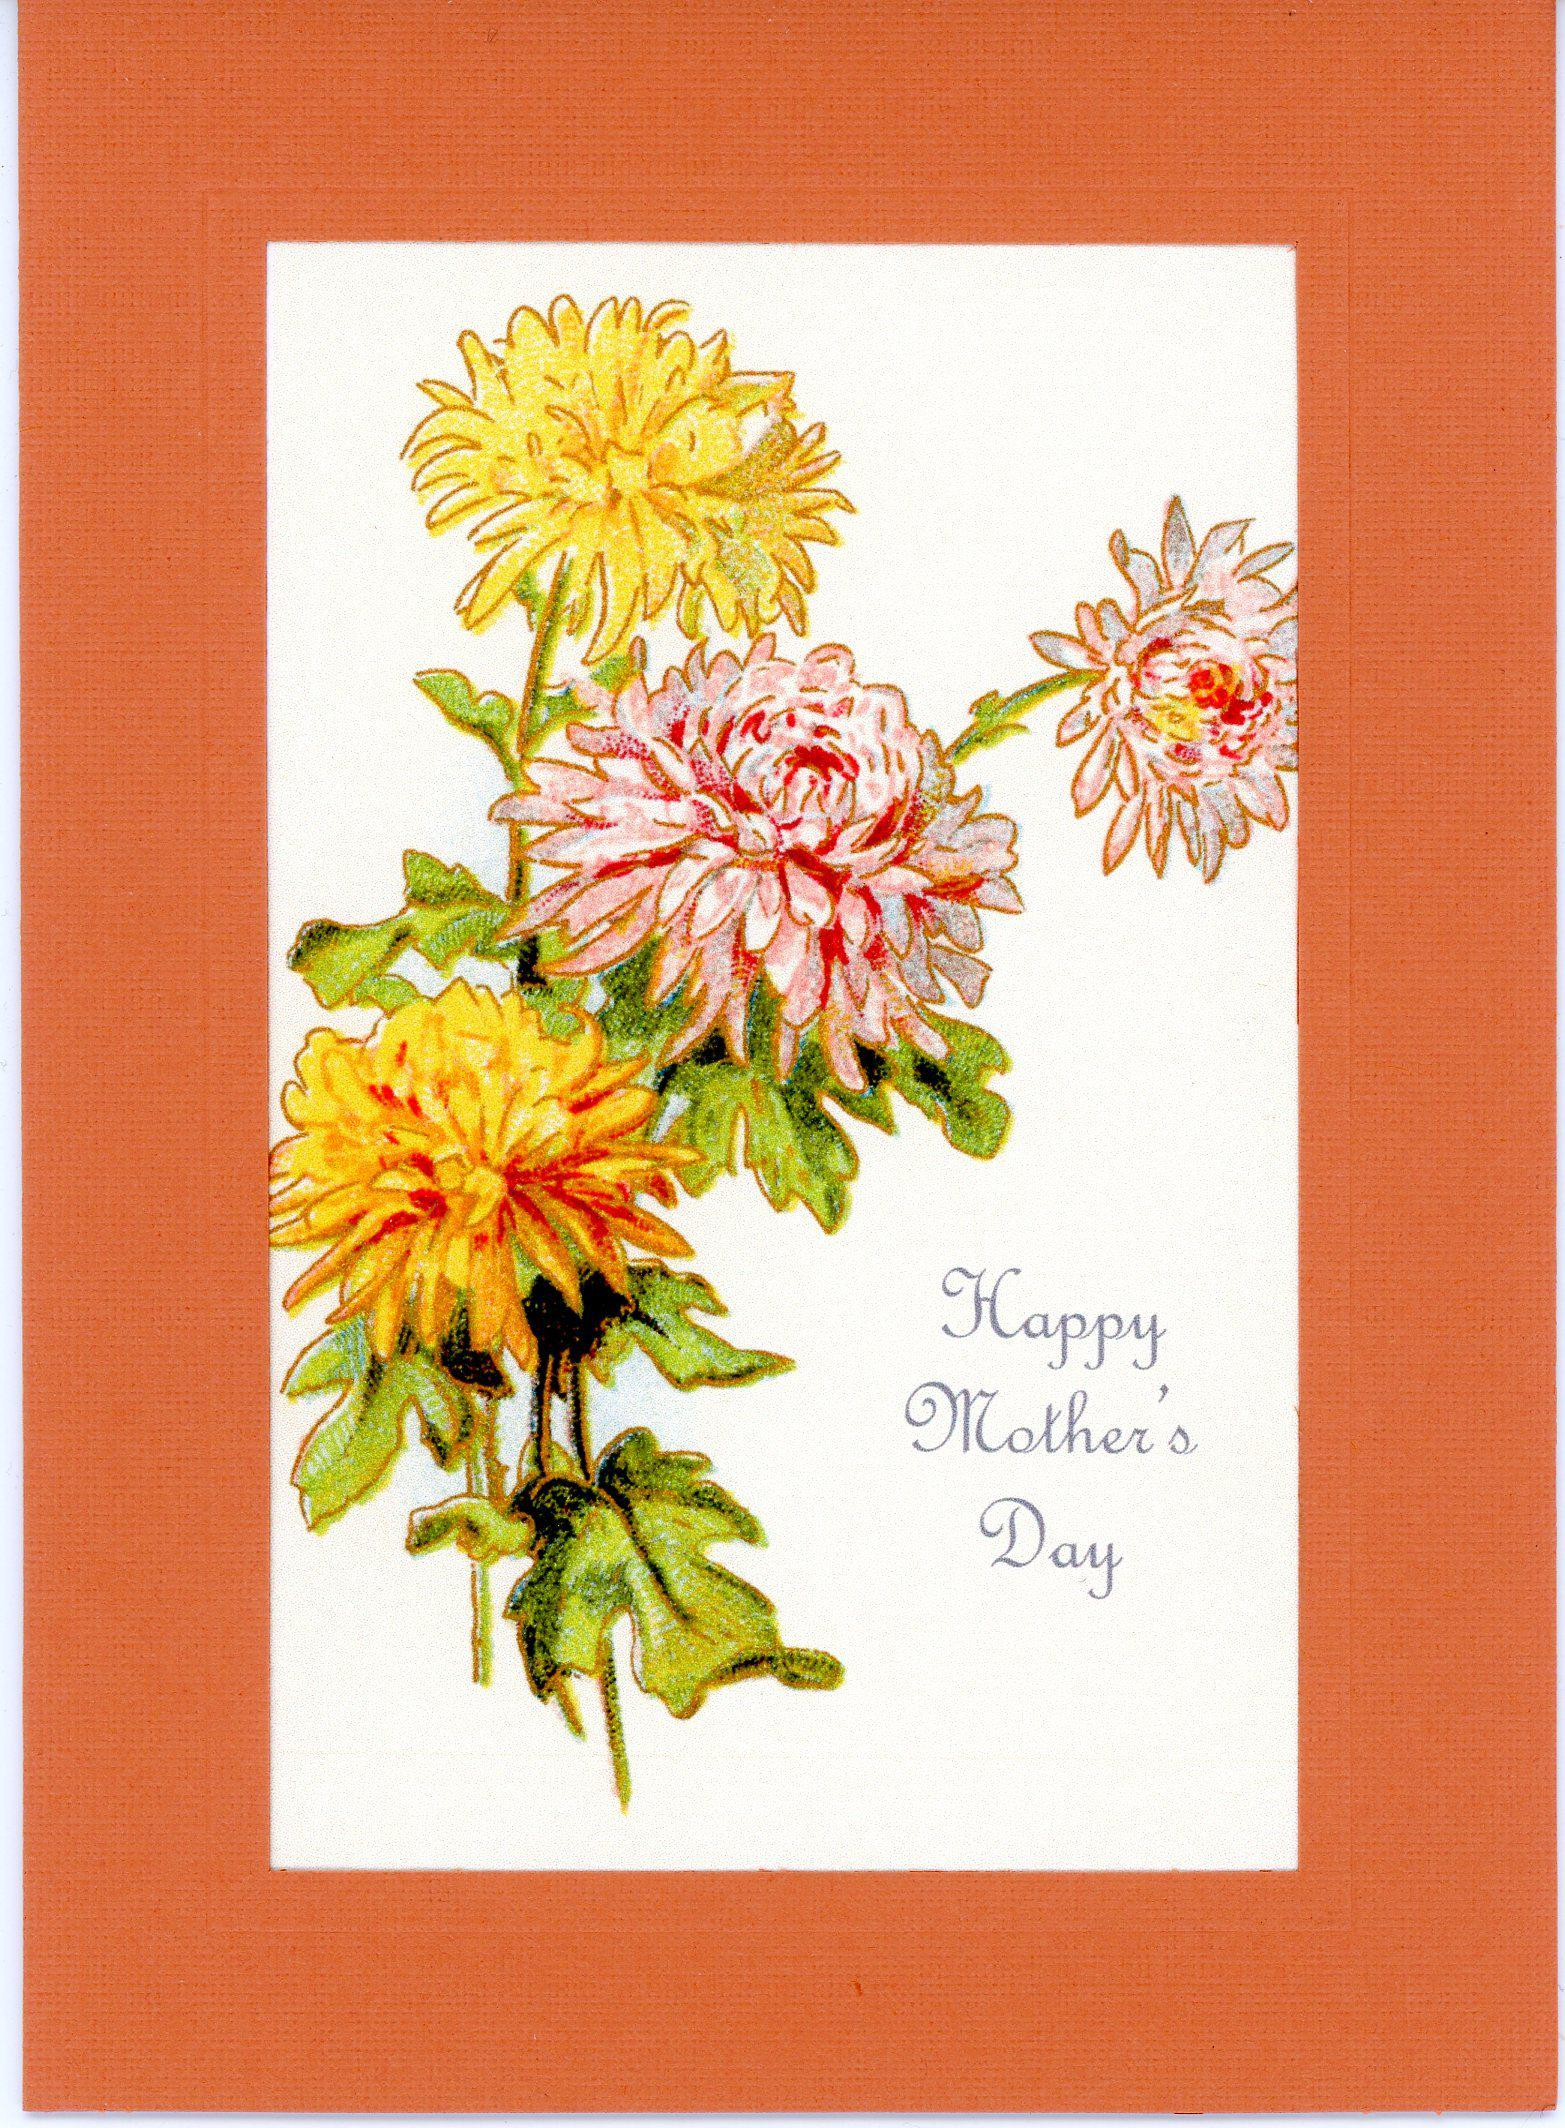 Happy Mother's Day-Greetings from the Past-Plymouth Cards